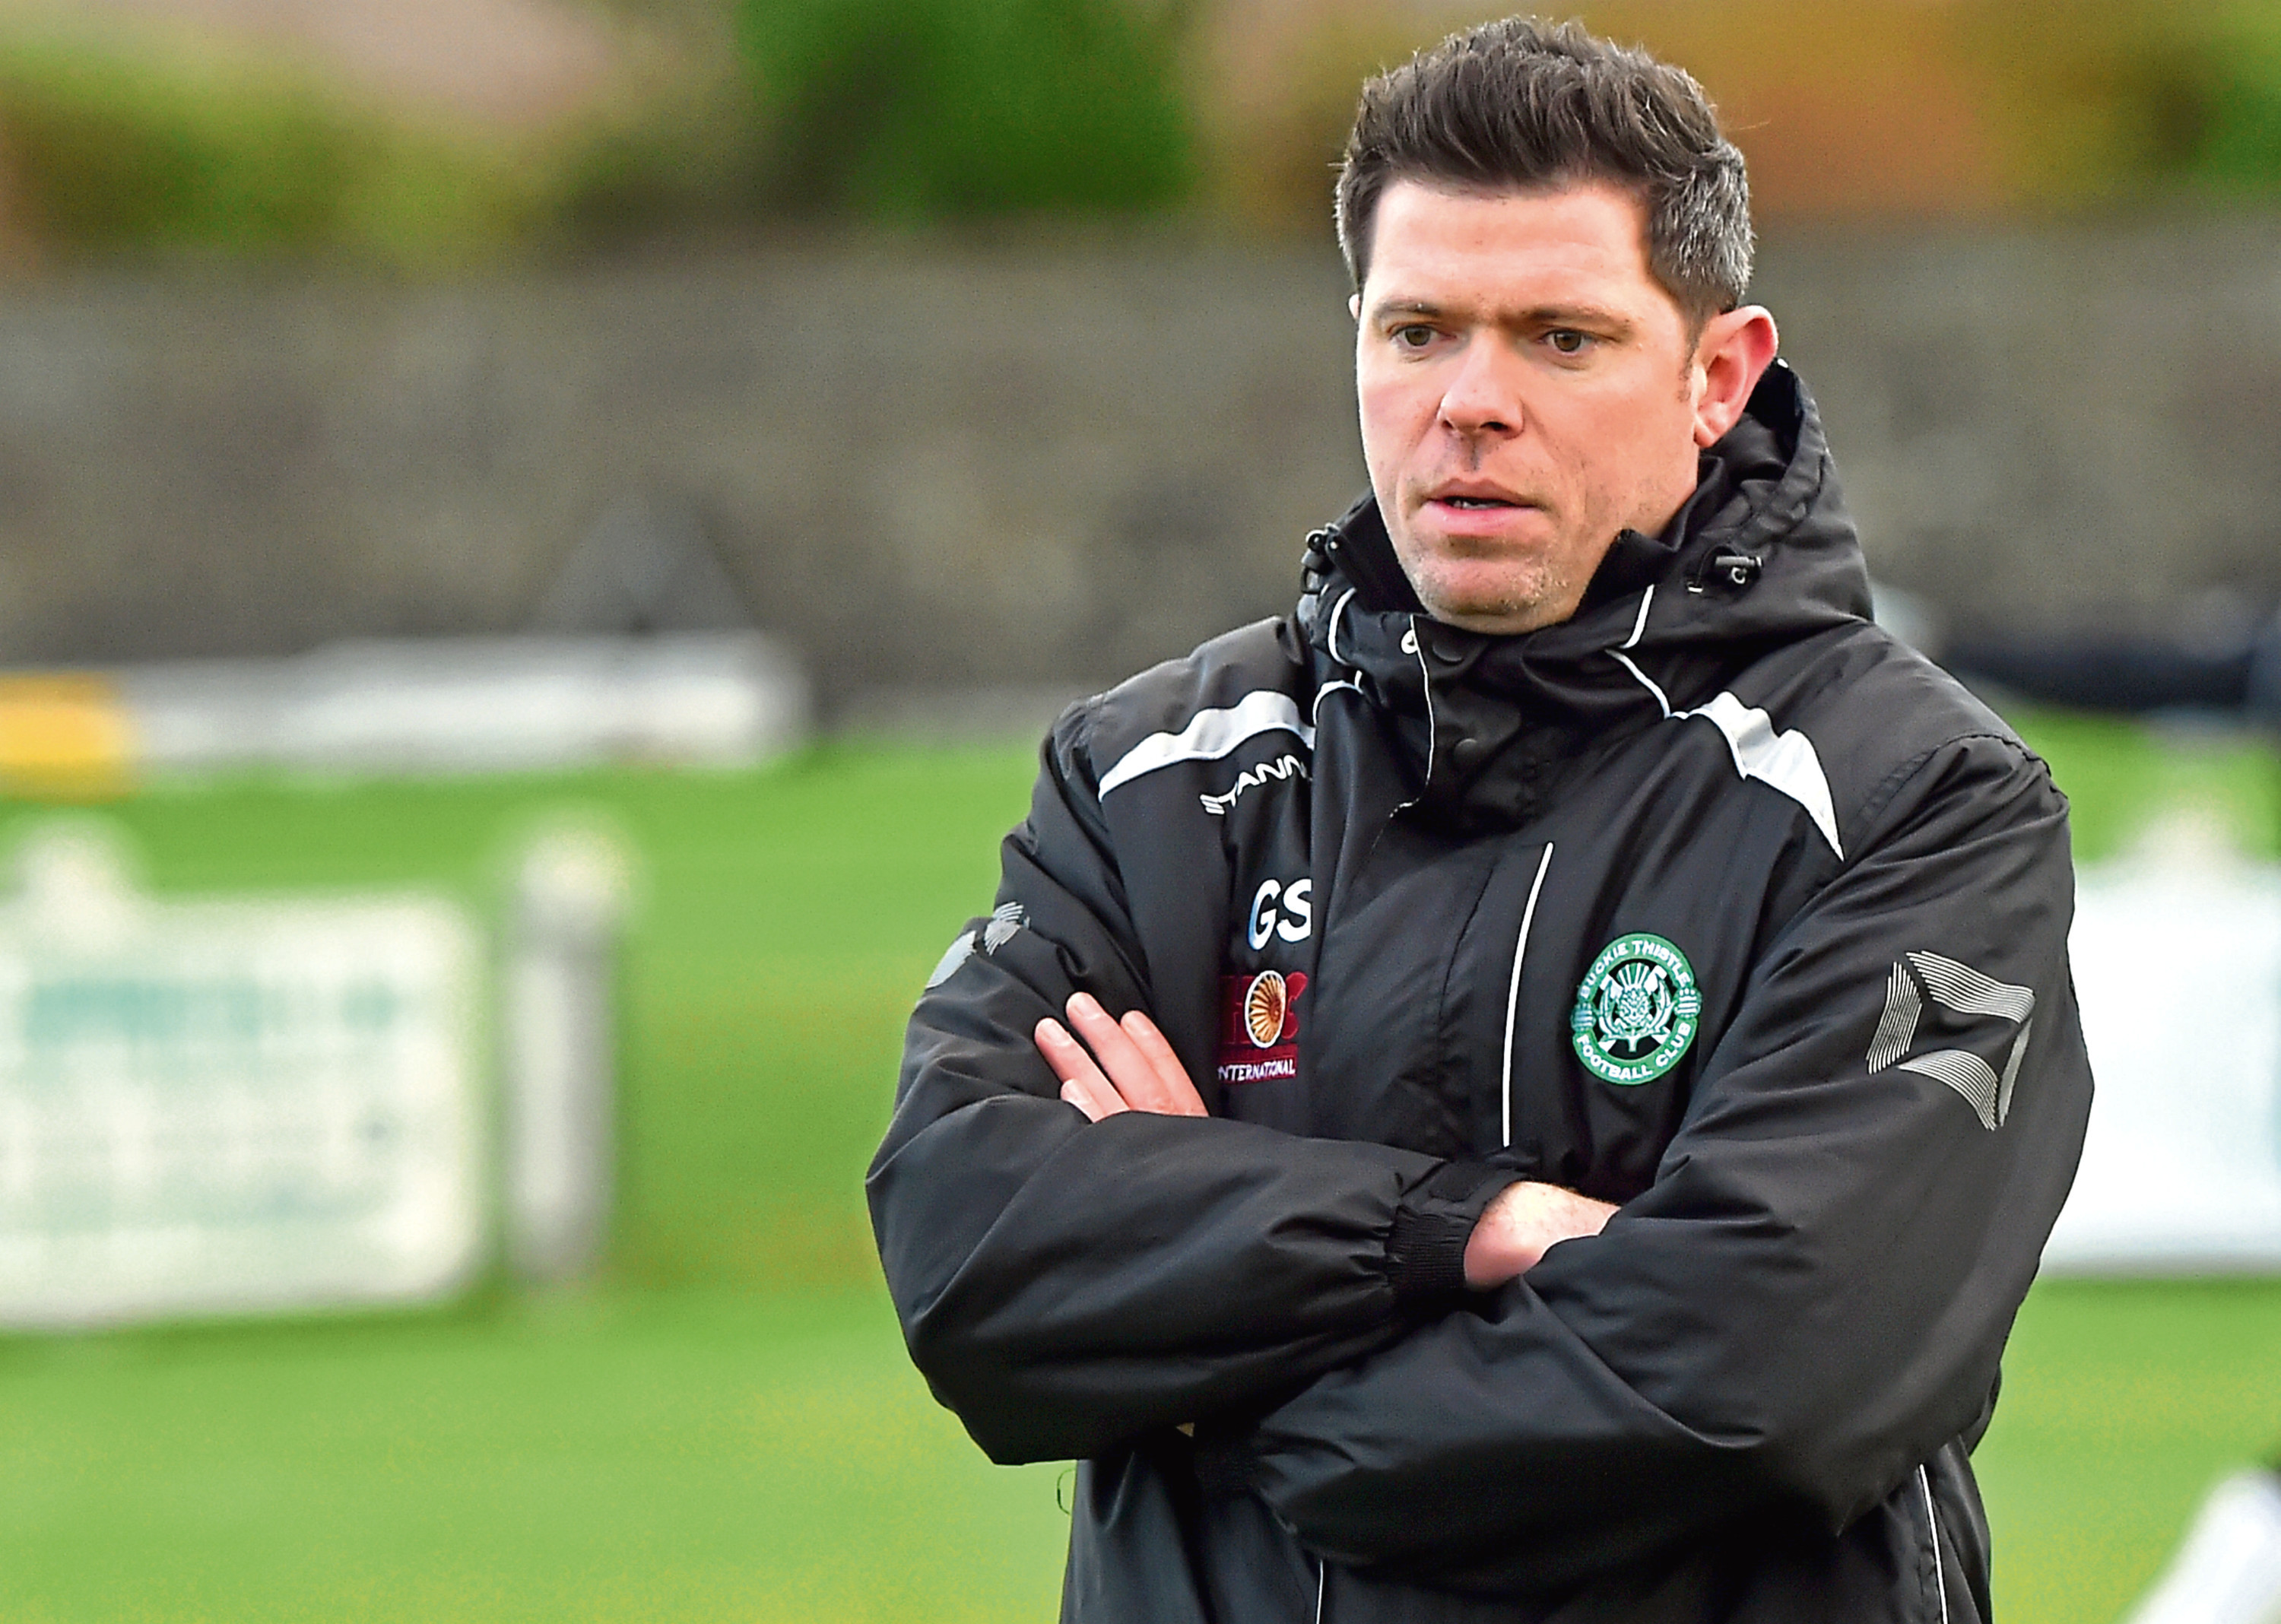 Buckie Thistle manager Graeme Stewart.  Picture by KENNY ELRICK.